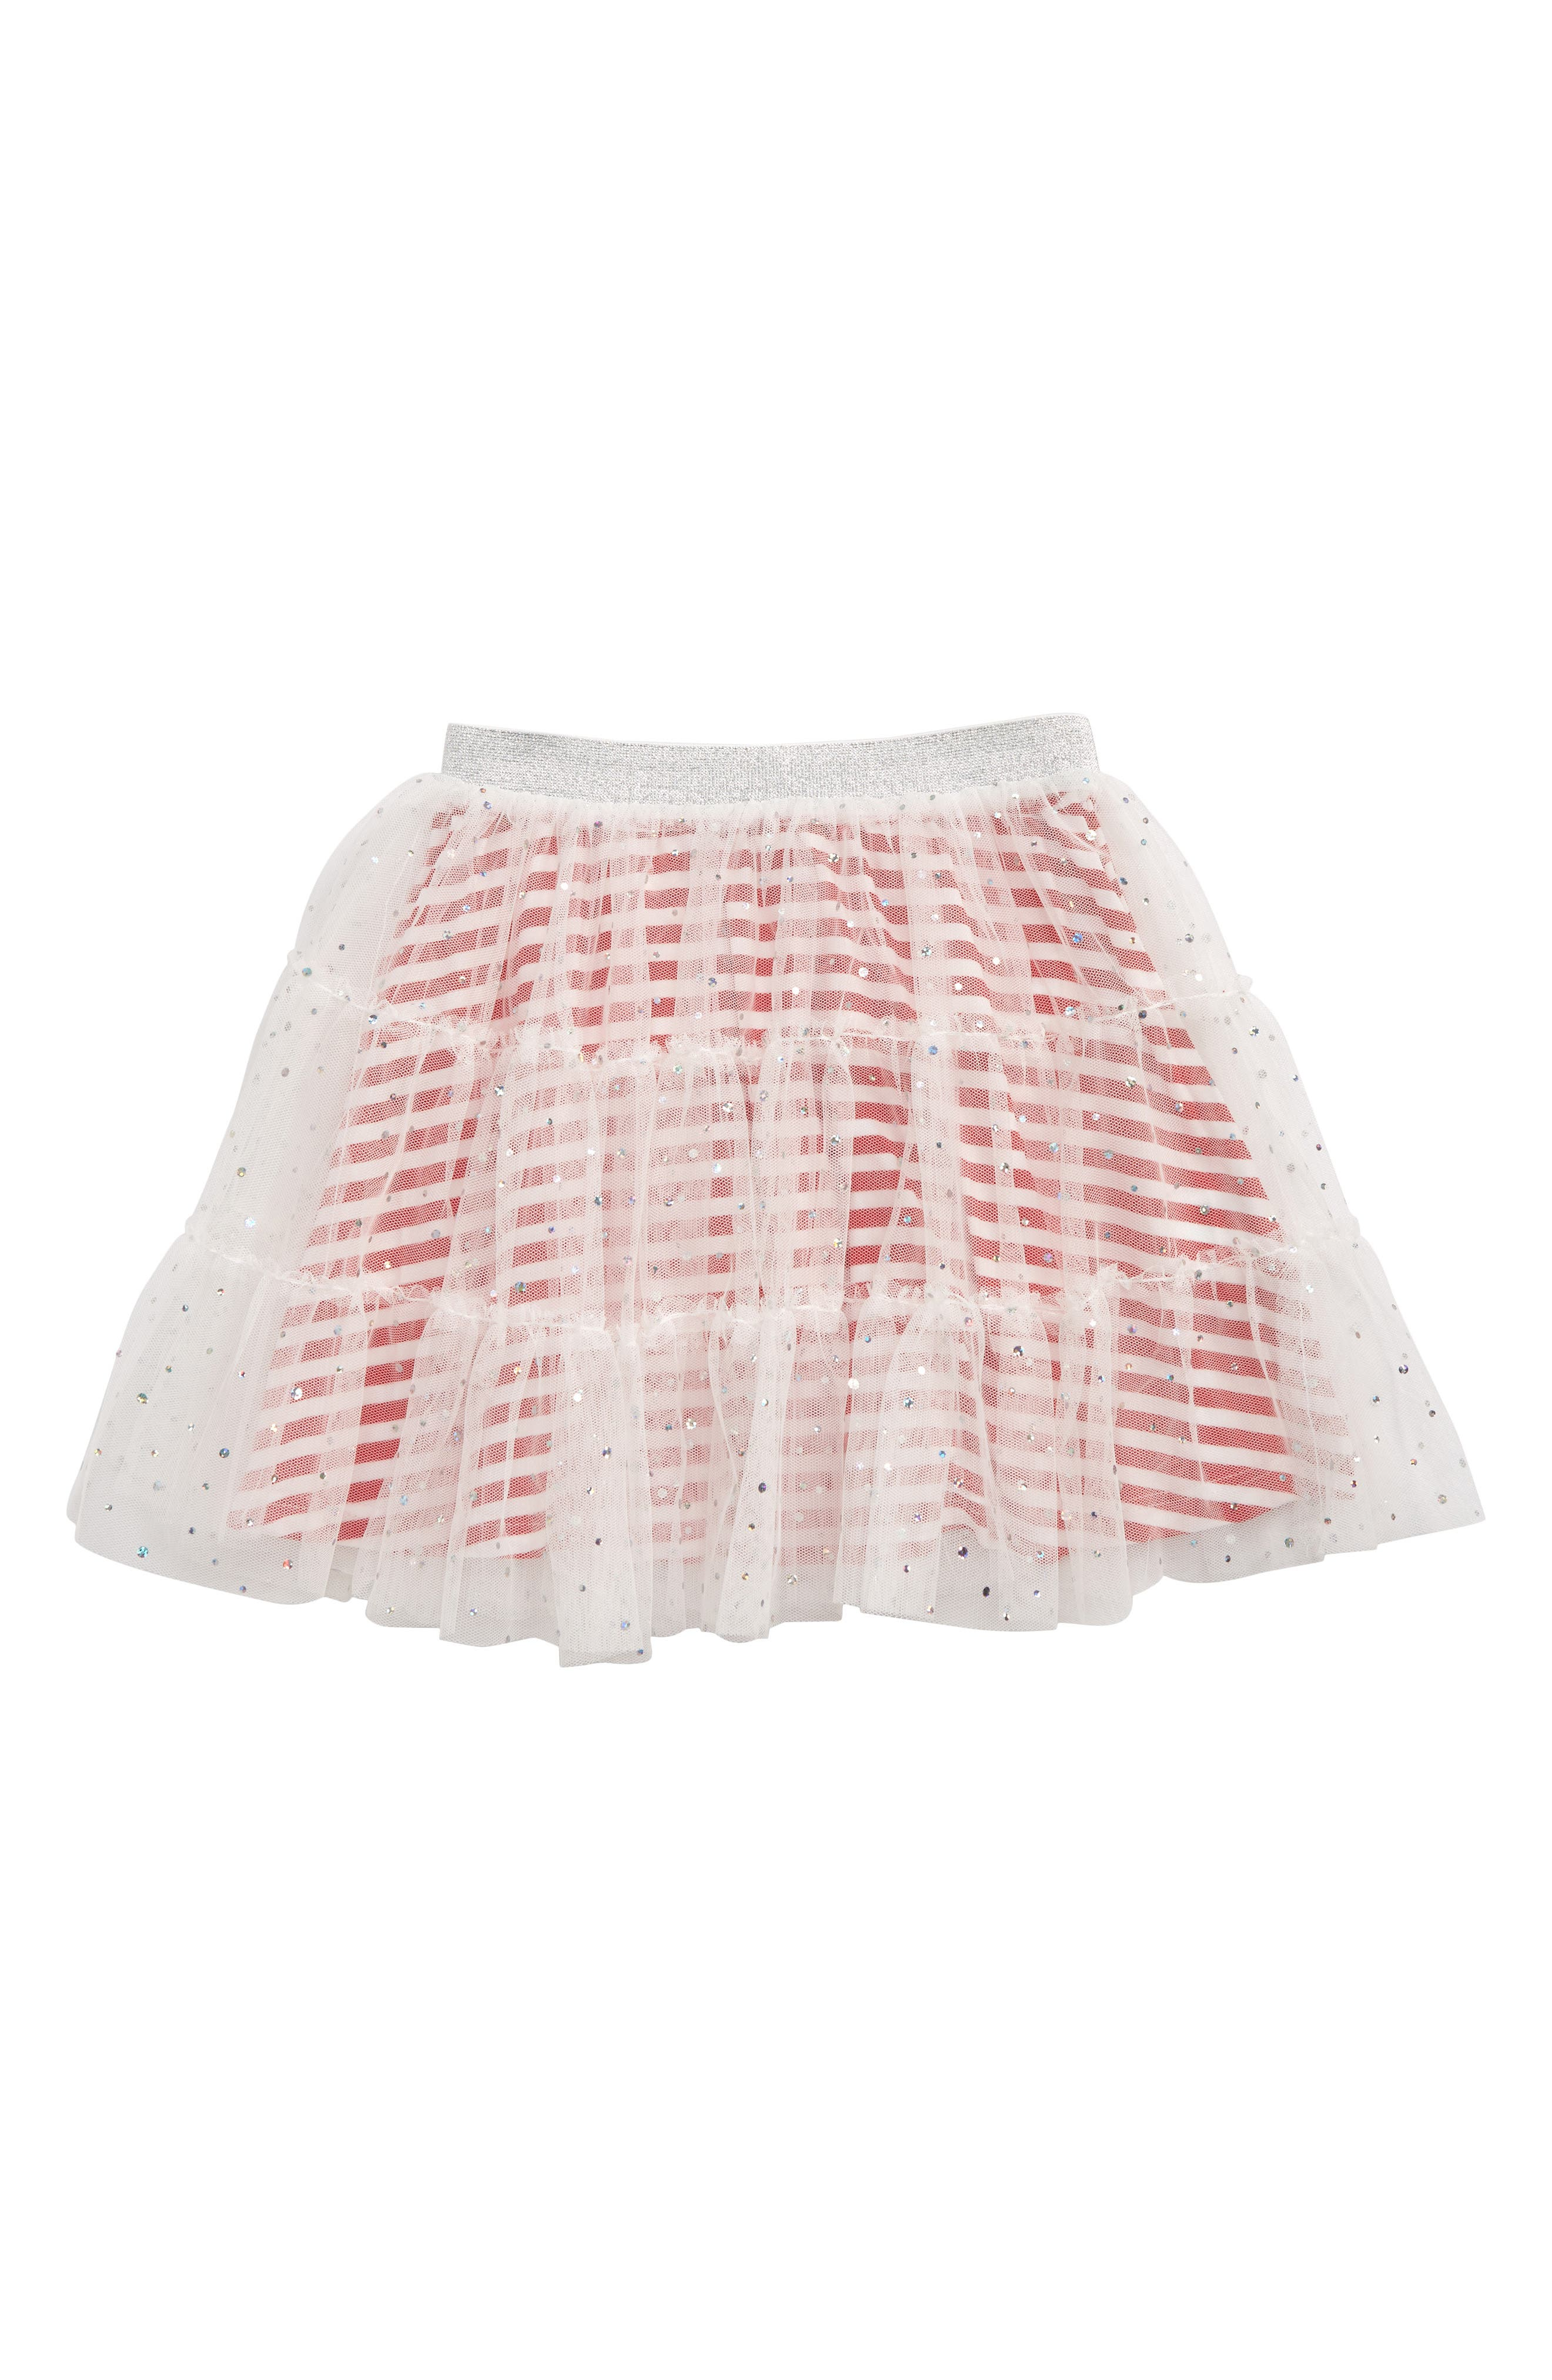 Toddler Girls Truly Me Hologram Tiered Skirt Size 2T  White